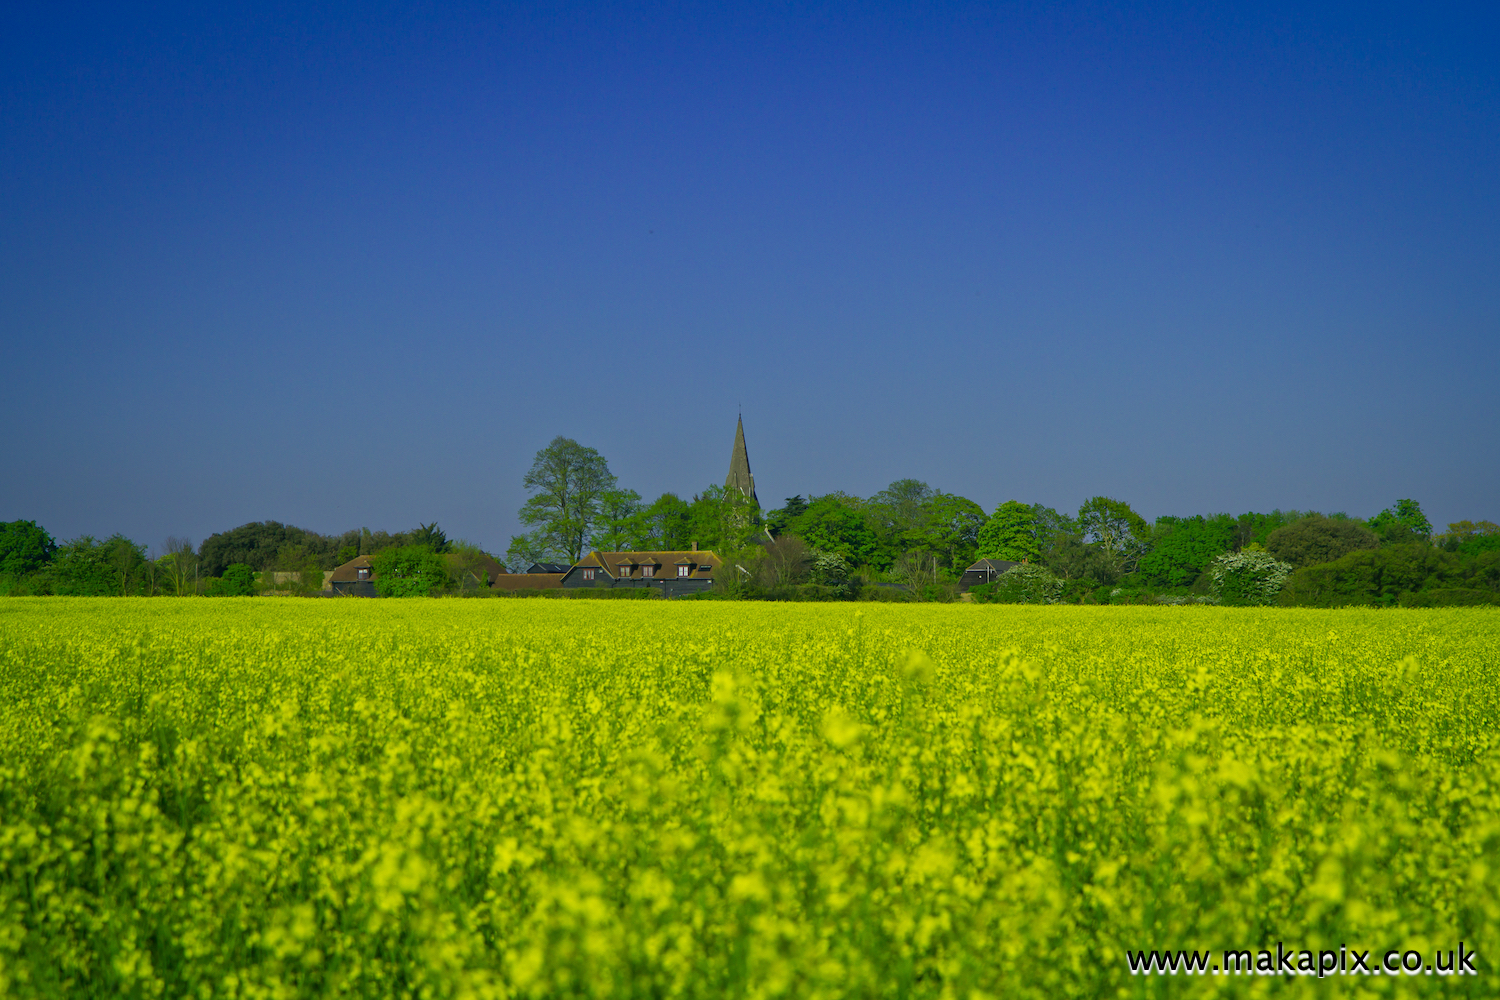 All Saints' Church and rapeseeds field in Upminster, Essex, England